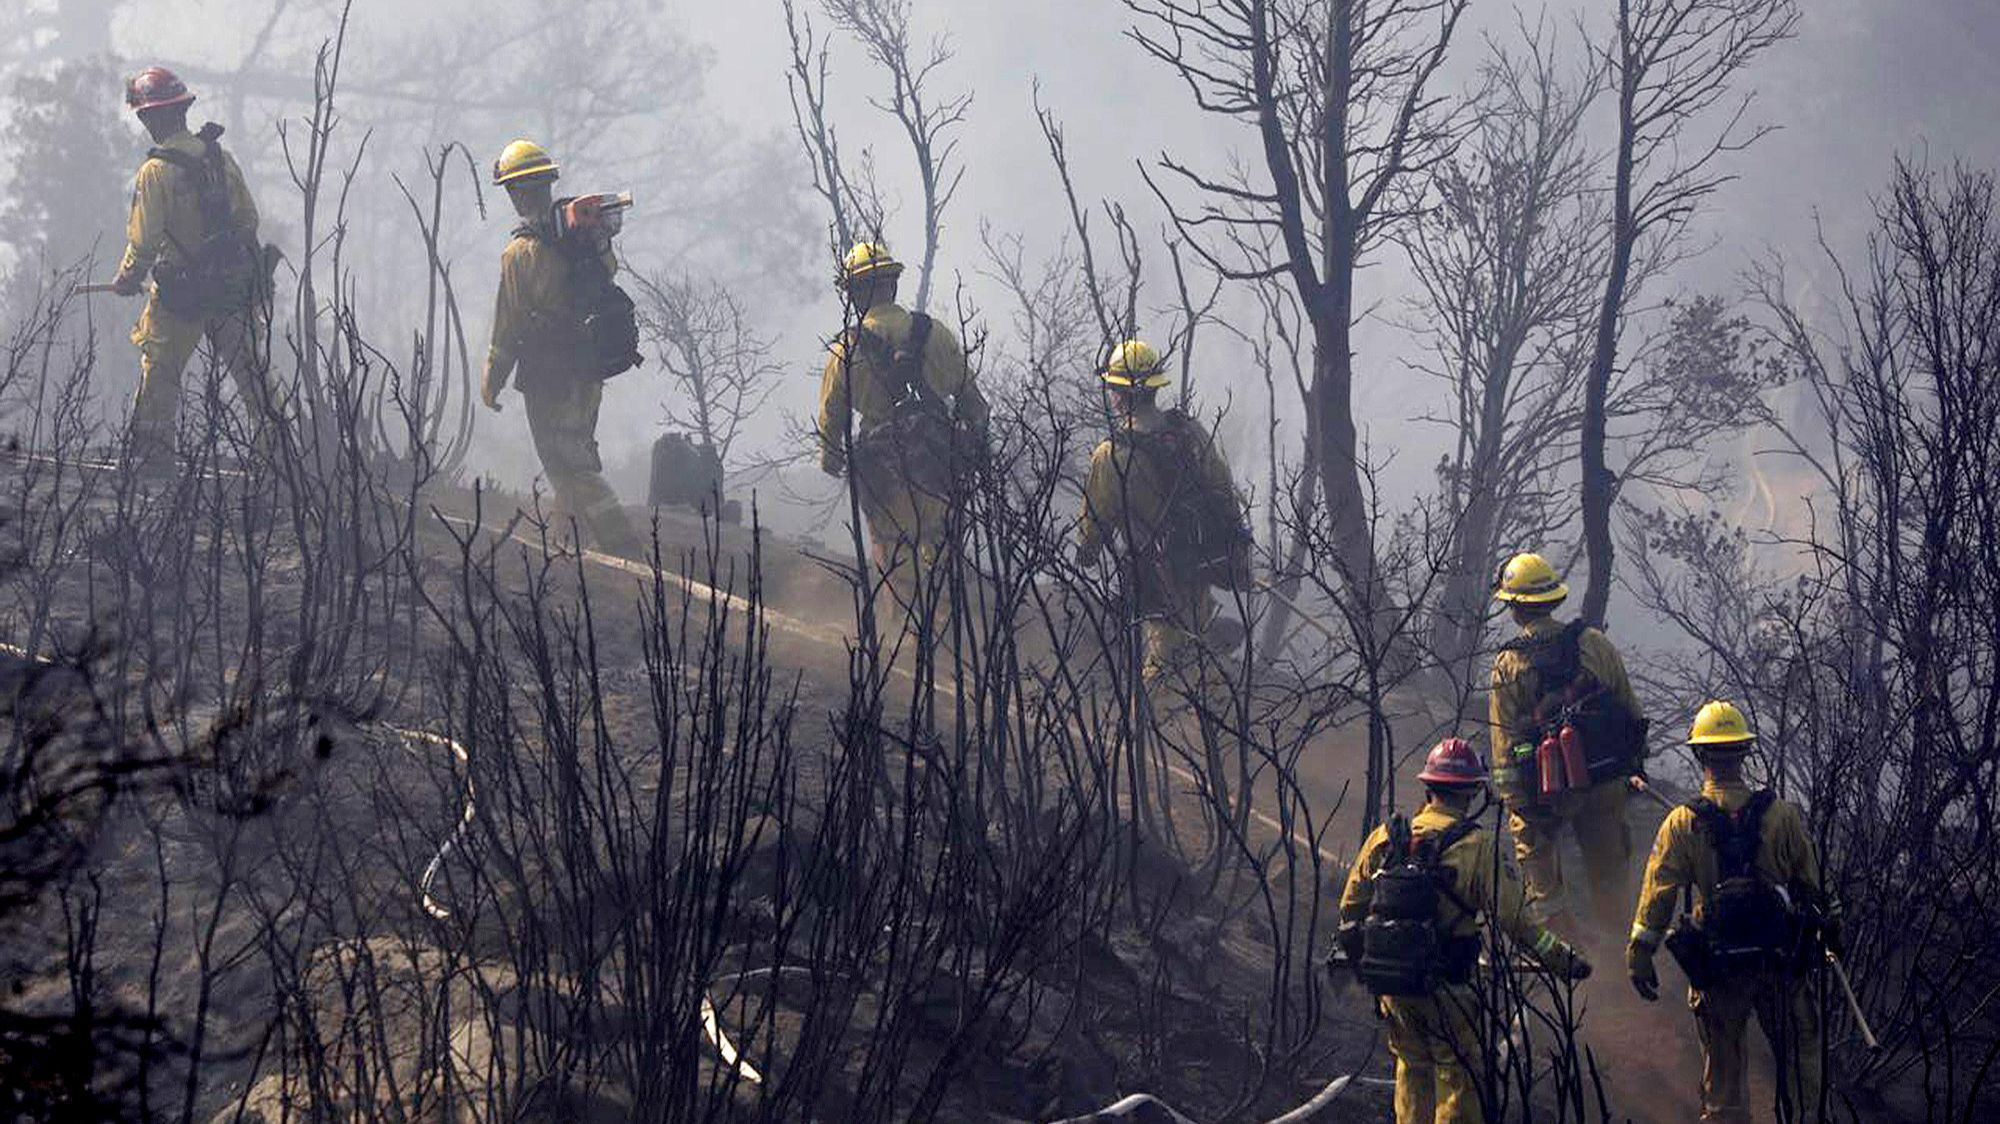 Firefighters cut a path through charred terrain as they work to extinguish a fire in Angeles National Forest.